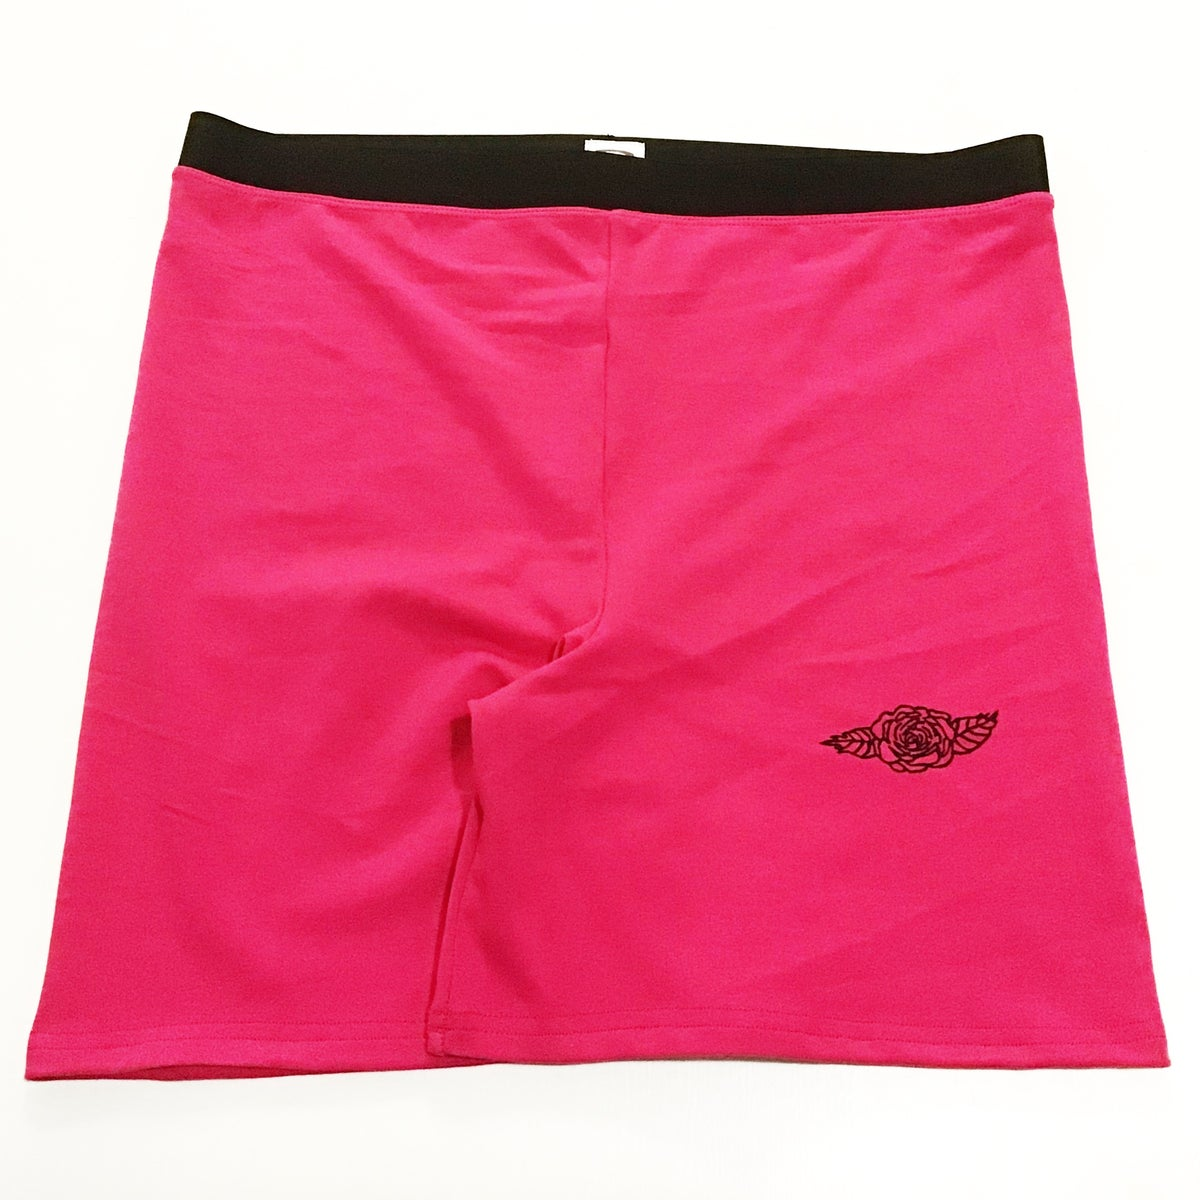 Image of Plus Size A Rose is a Rose Women's Boxers